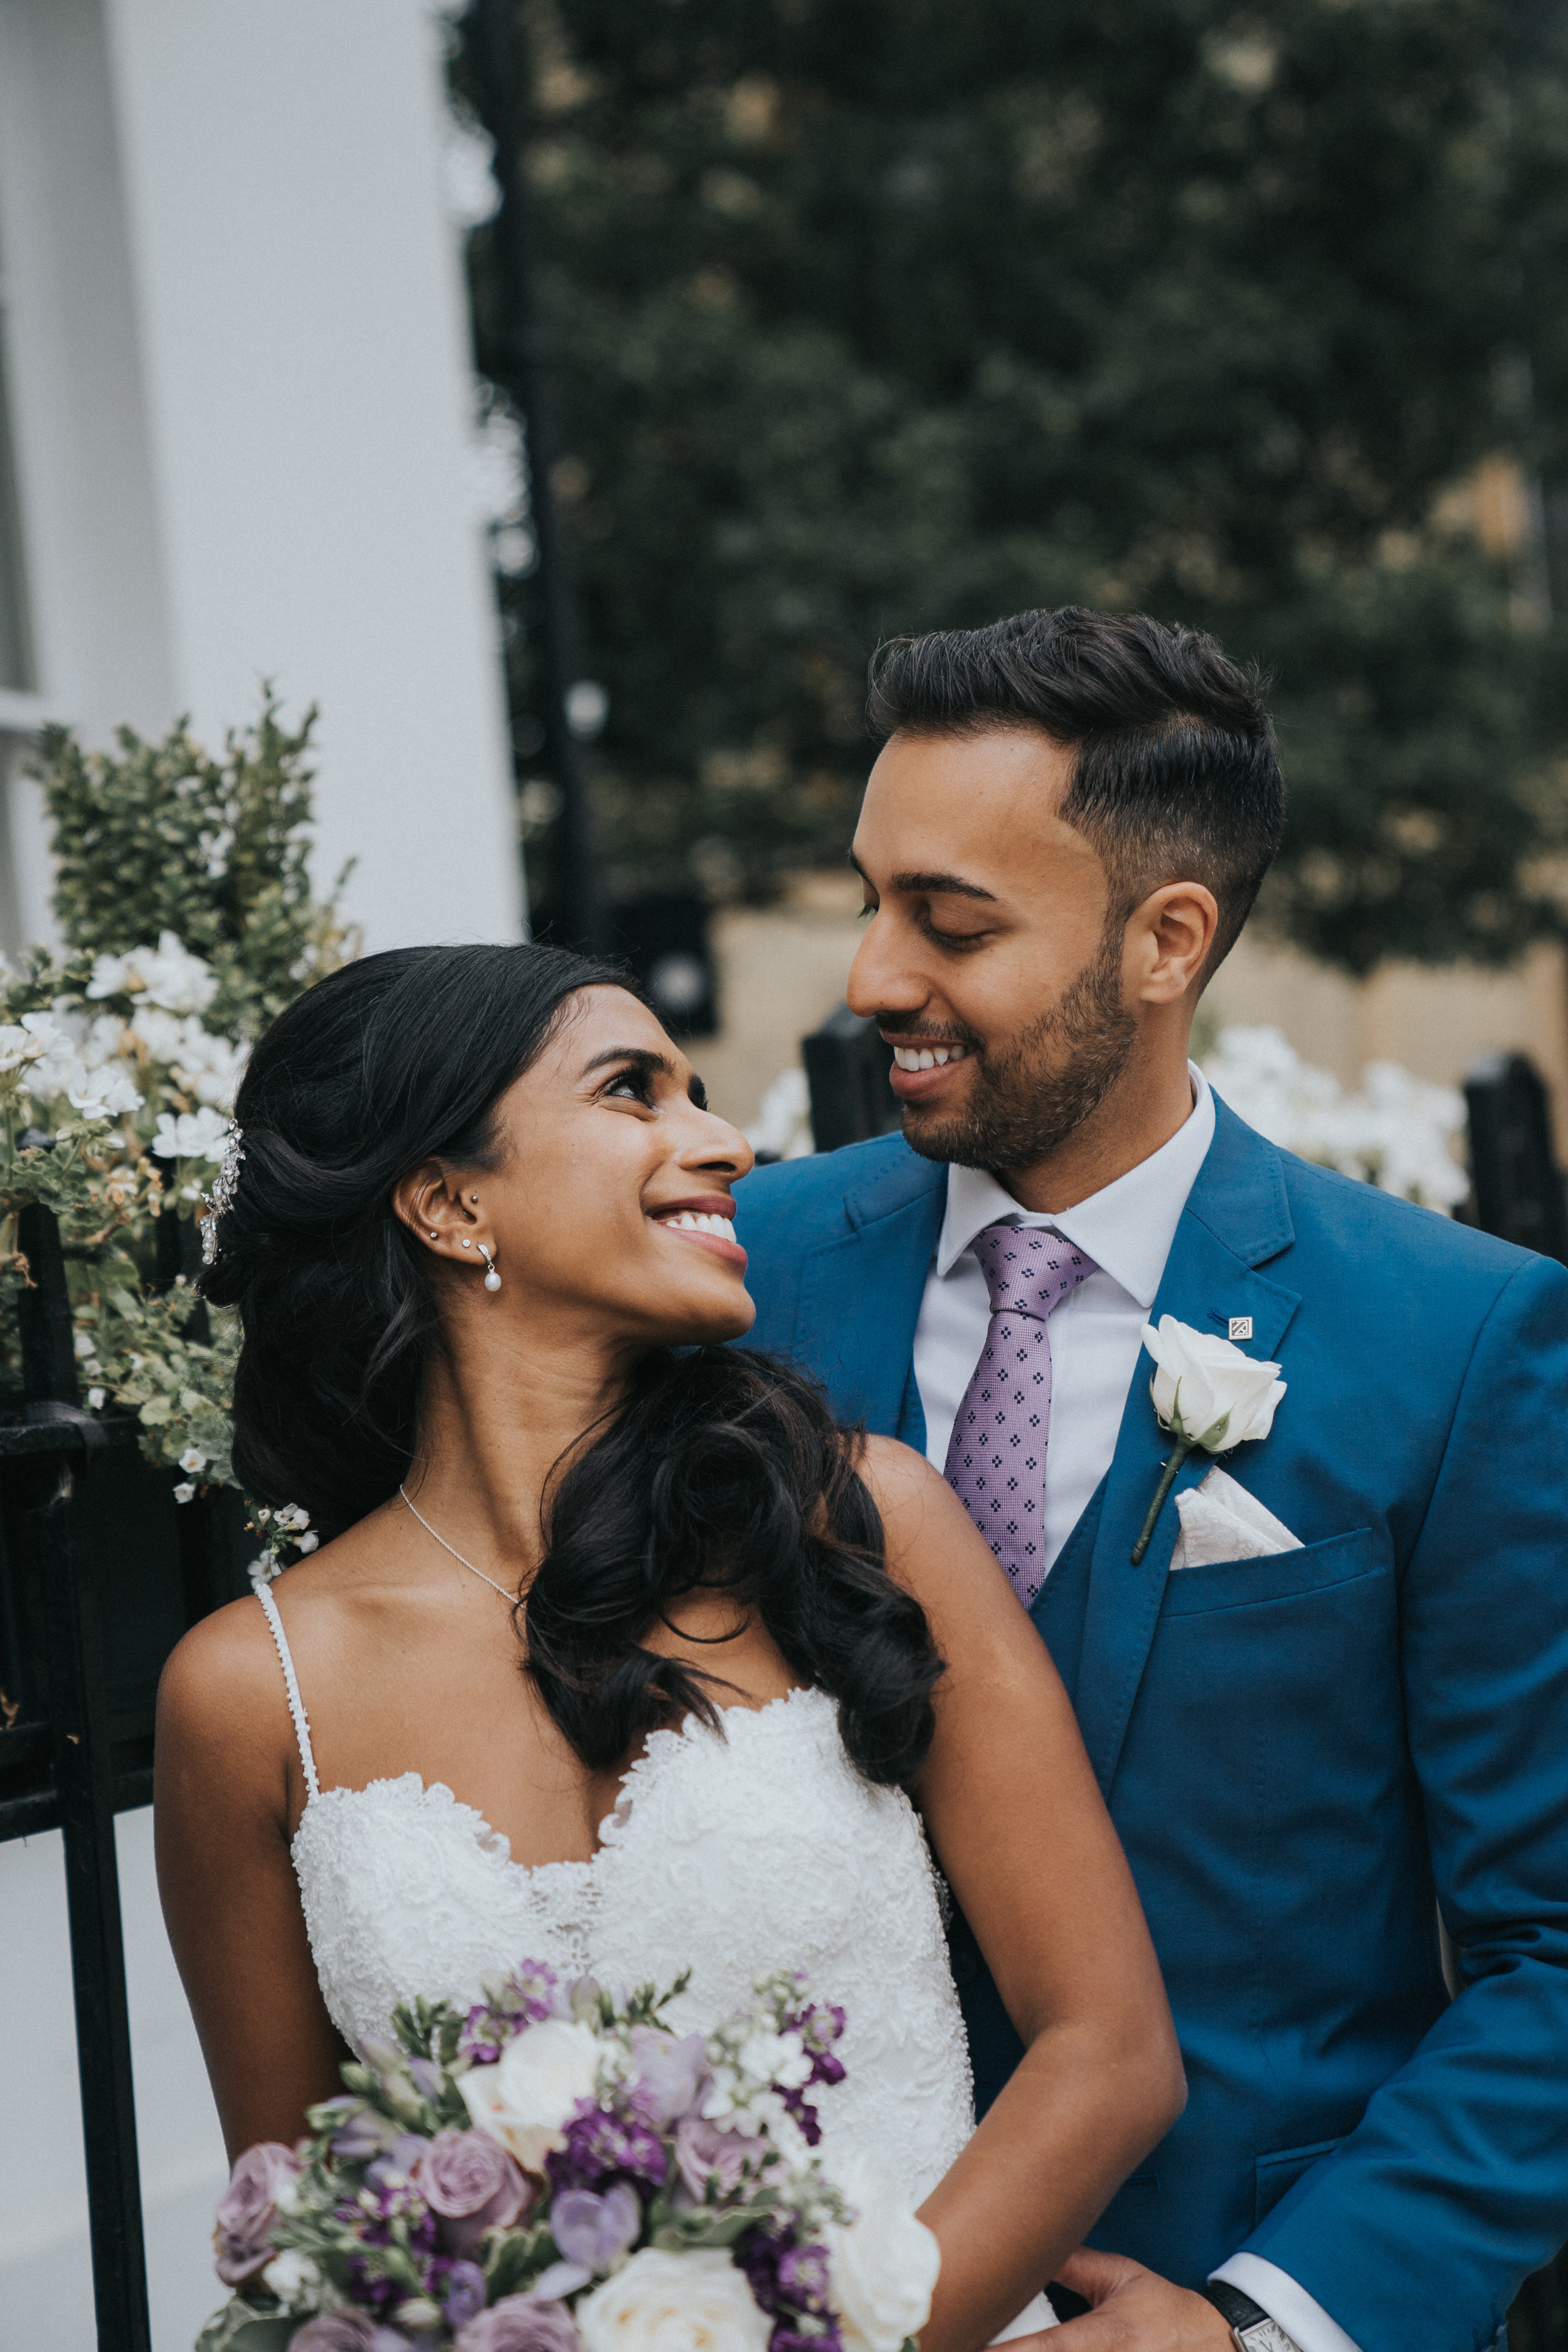 anglo-asian-hindu-civil-wedding-photography-videography-london-portrait-marylebone-old-town-hall-57